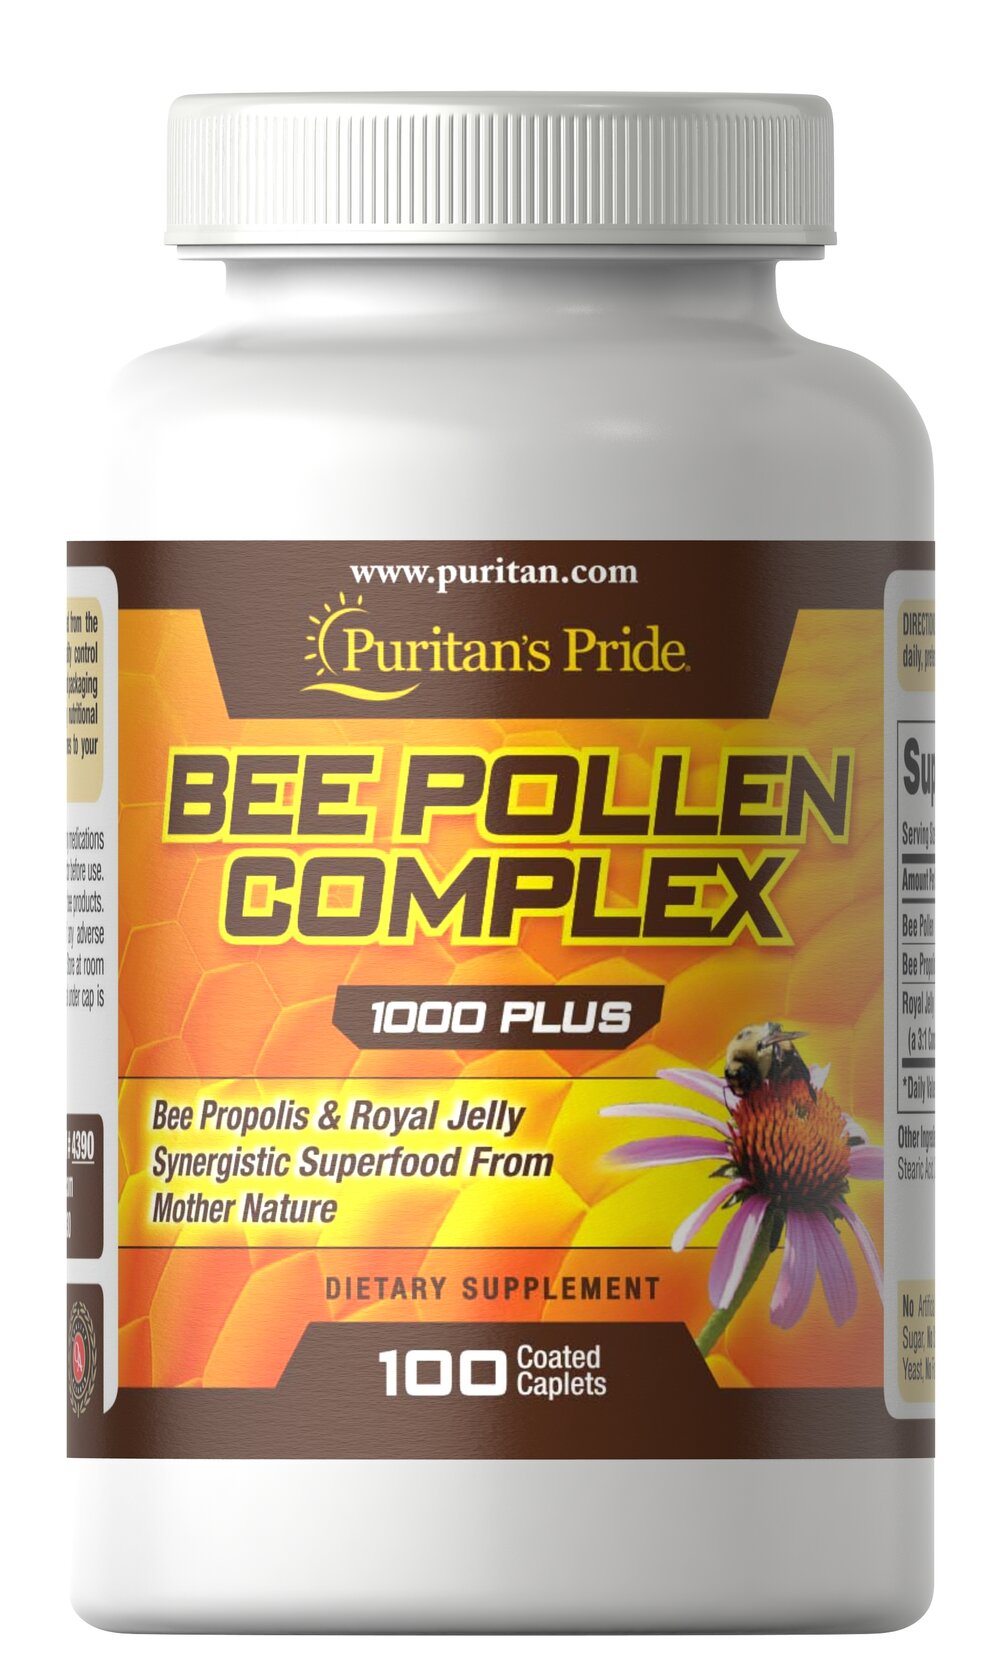 Bee Pollen Complex <p>All 3 Bee Nutrients in One Convenient Tablet!</p><p>Bee Pollen: 1000 mg.</p><p>Bee Propolis: 10 mg.</p><p>Royal Jelly: 10 mg</p> 100 Caplets 1000 mg $15.49